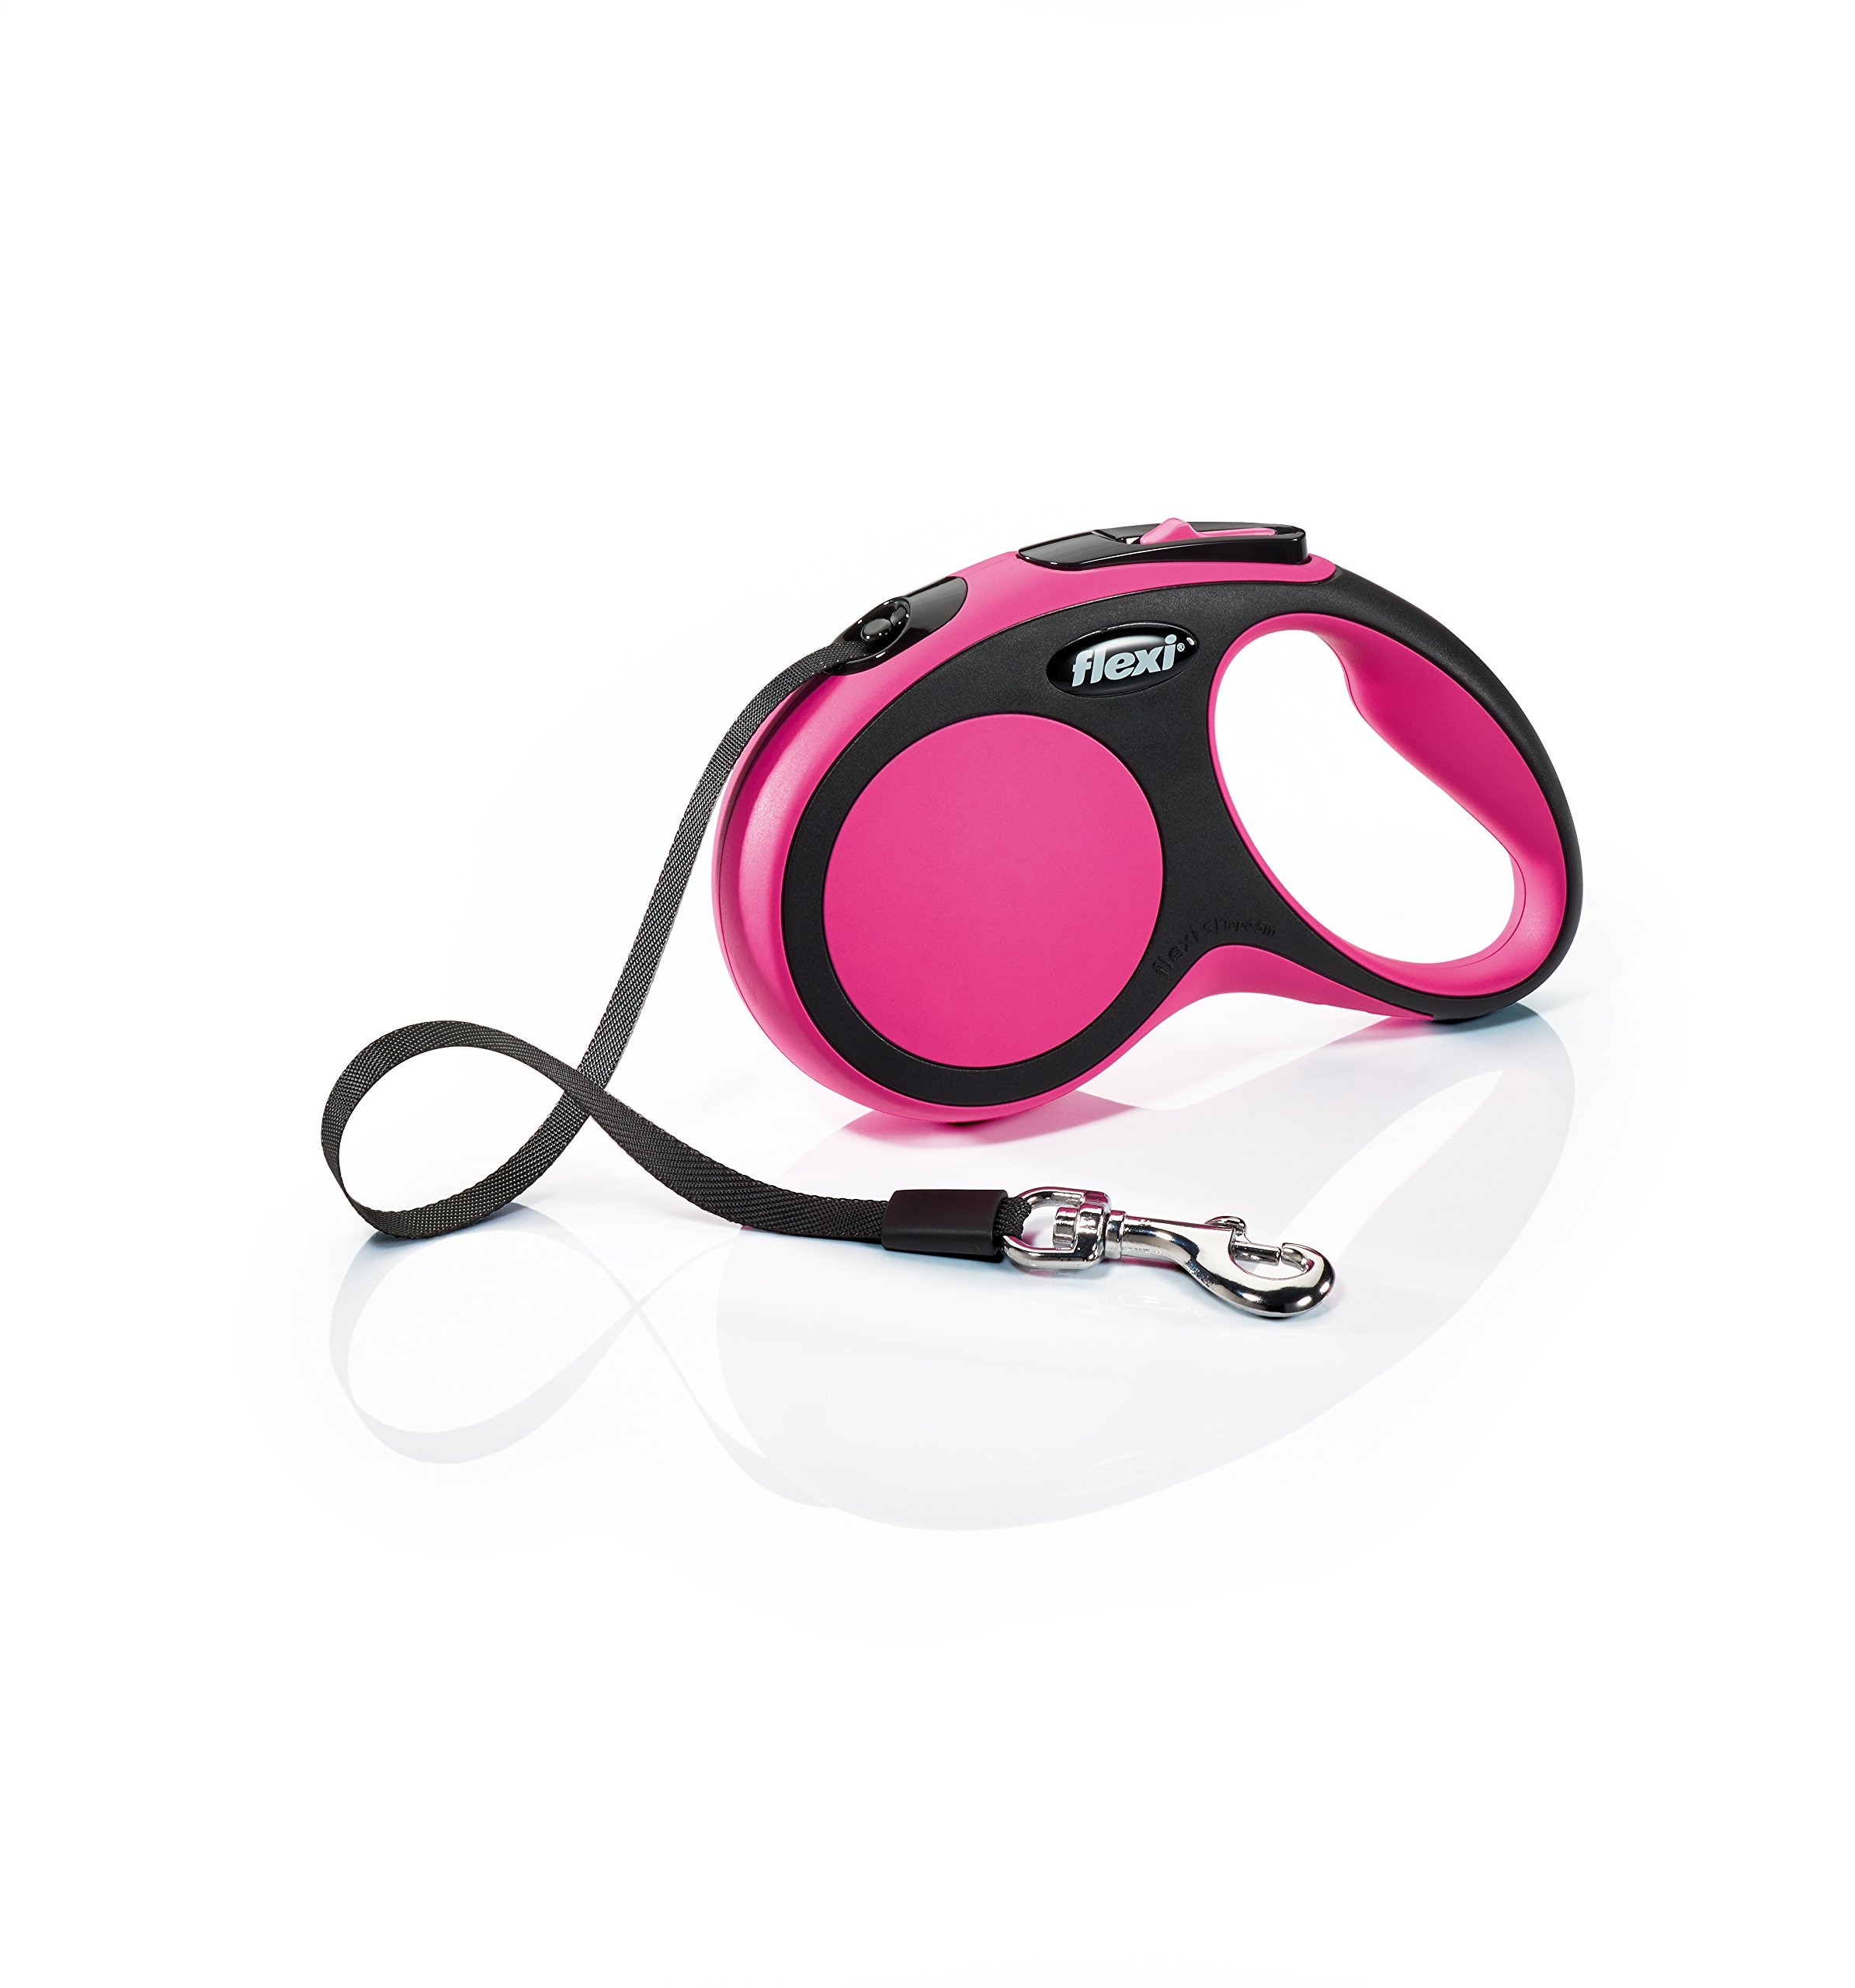 Flexi New Comfort Retractable Dog Leash (Tape), 16 ft, Small, Pink by Flexi